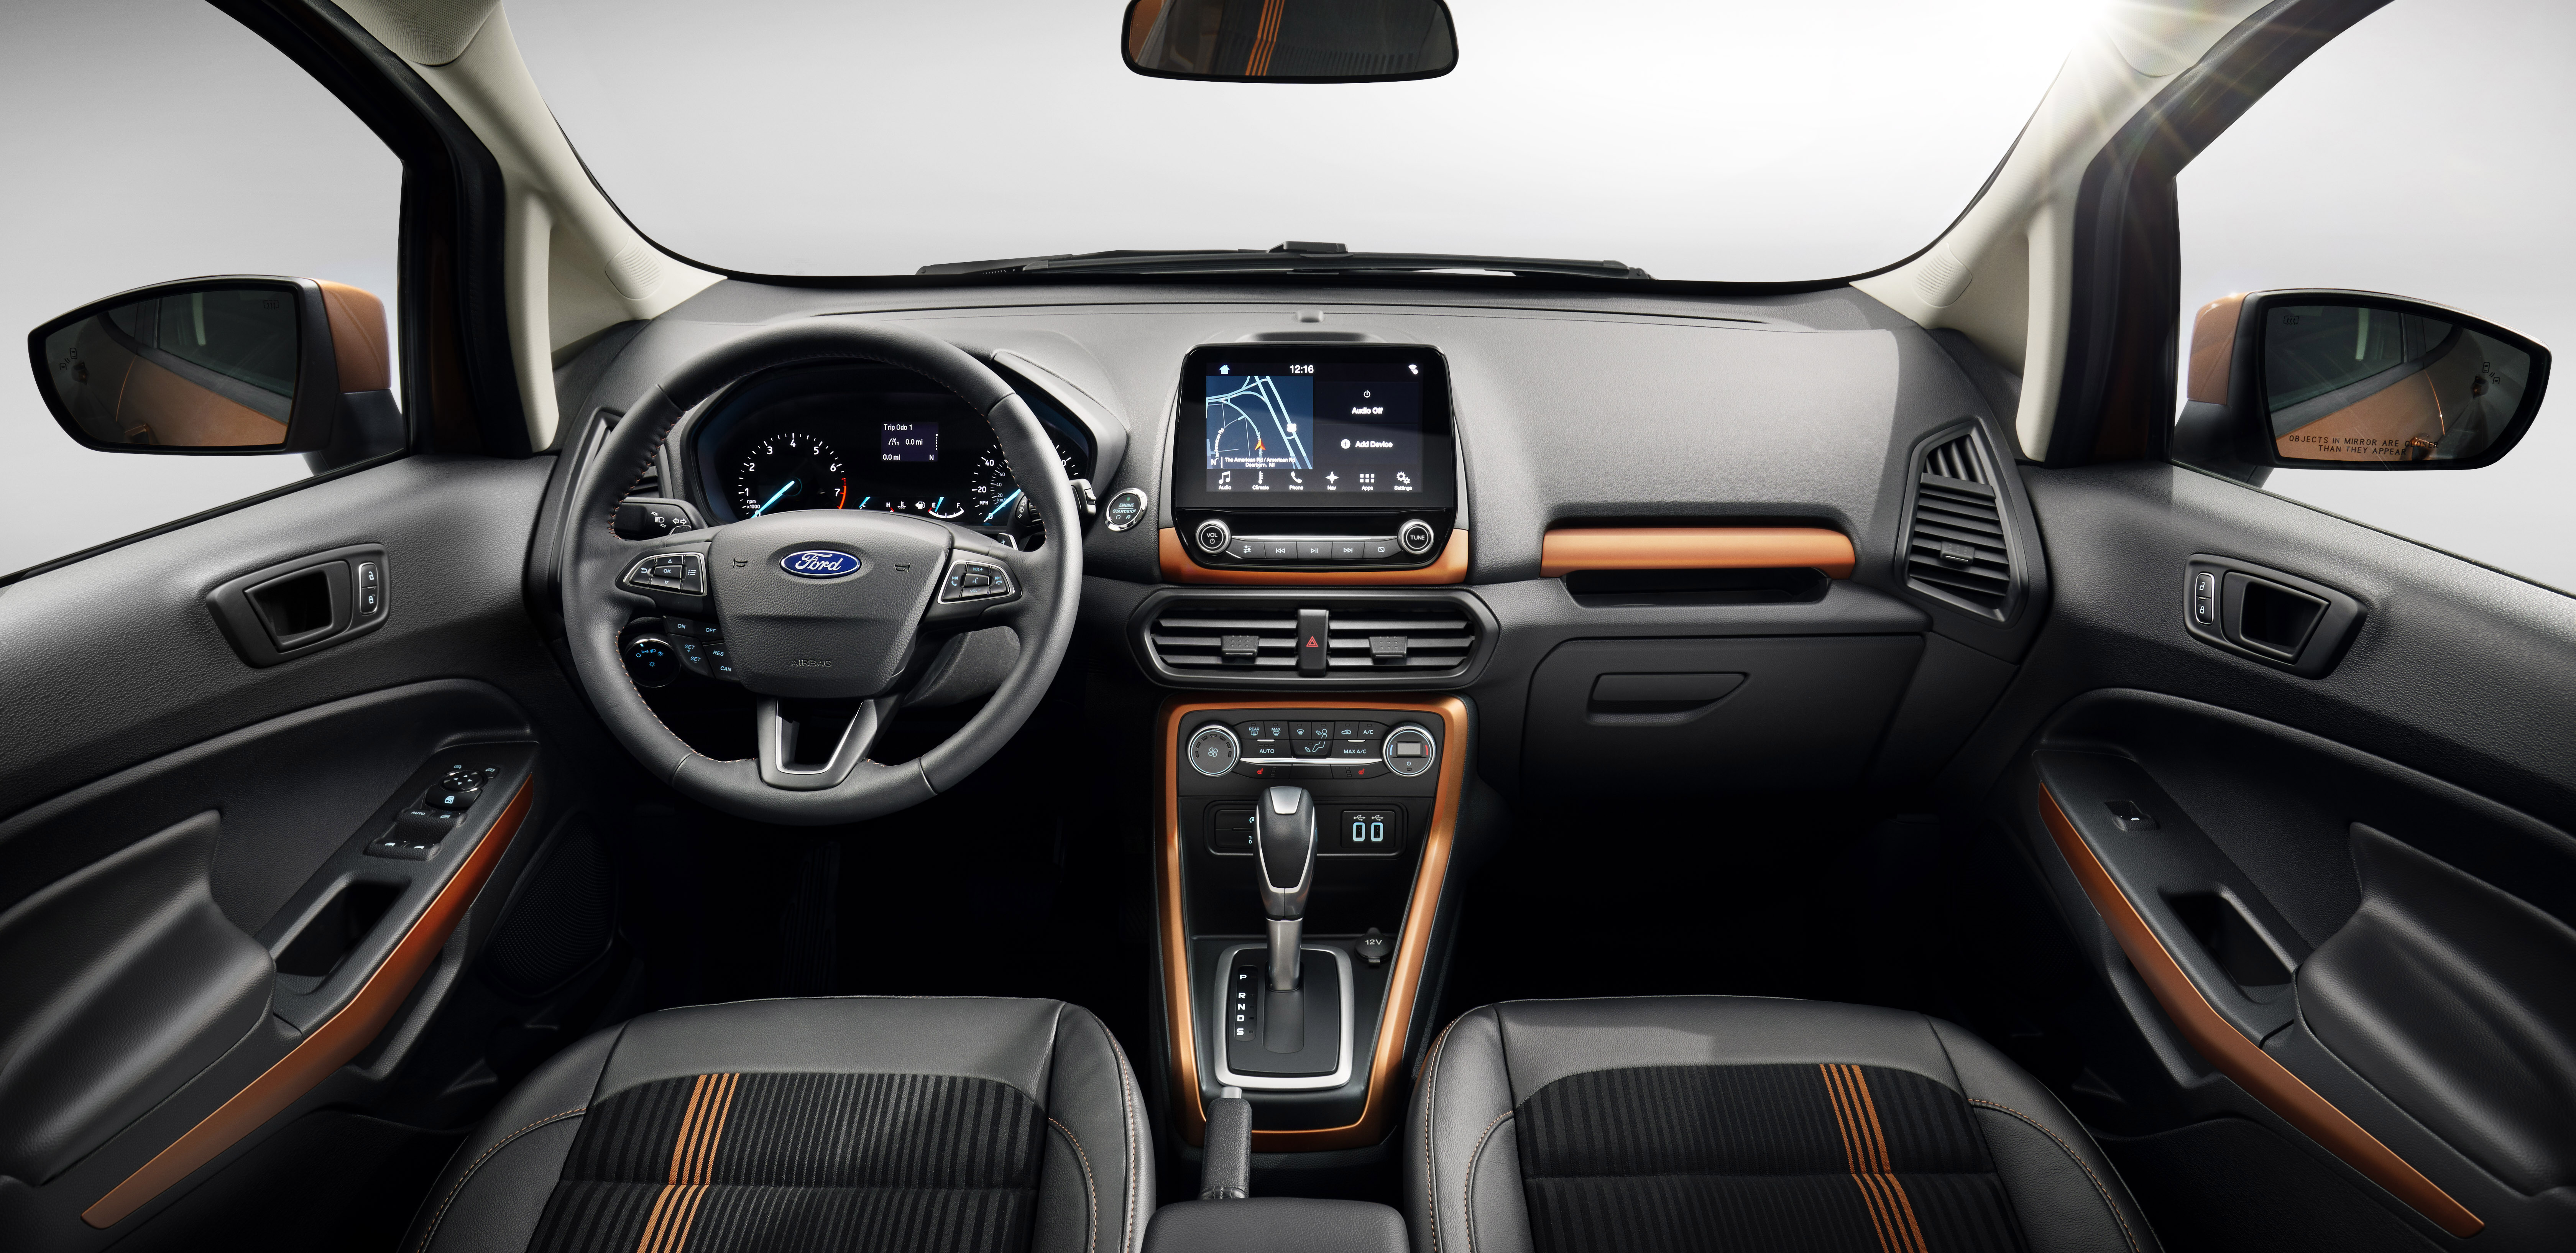 Spring for the upgraded in the EcoSport and you'll enjoy nice accommodations, with a comfortable seat and easy-to-operate stereo.